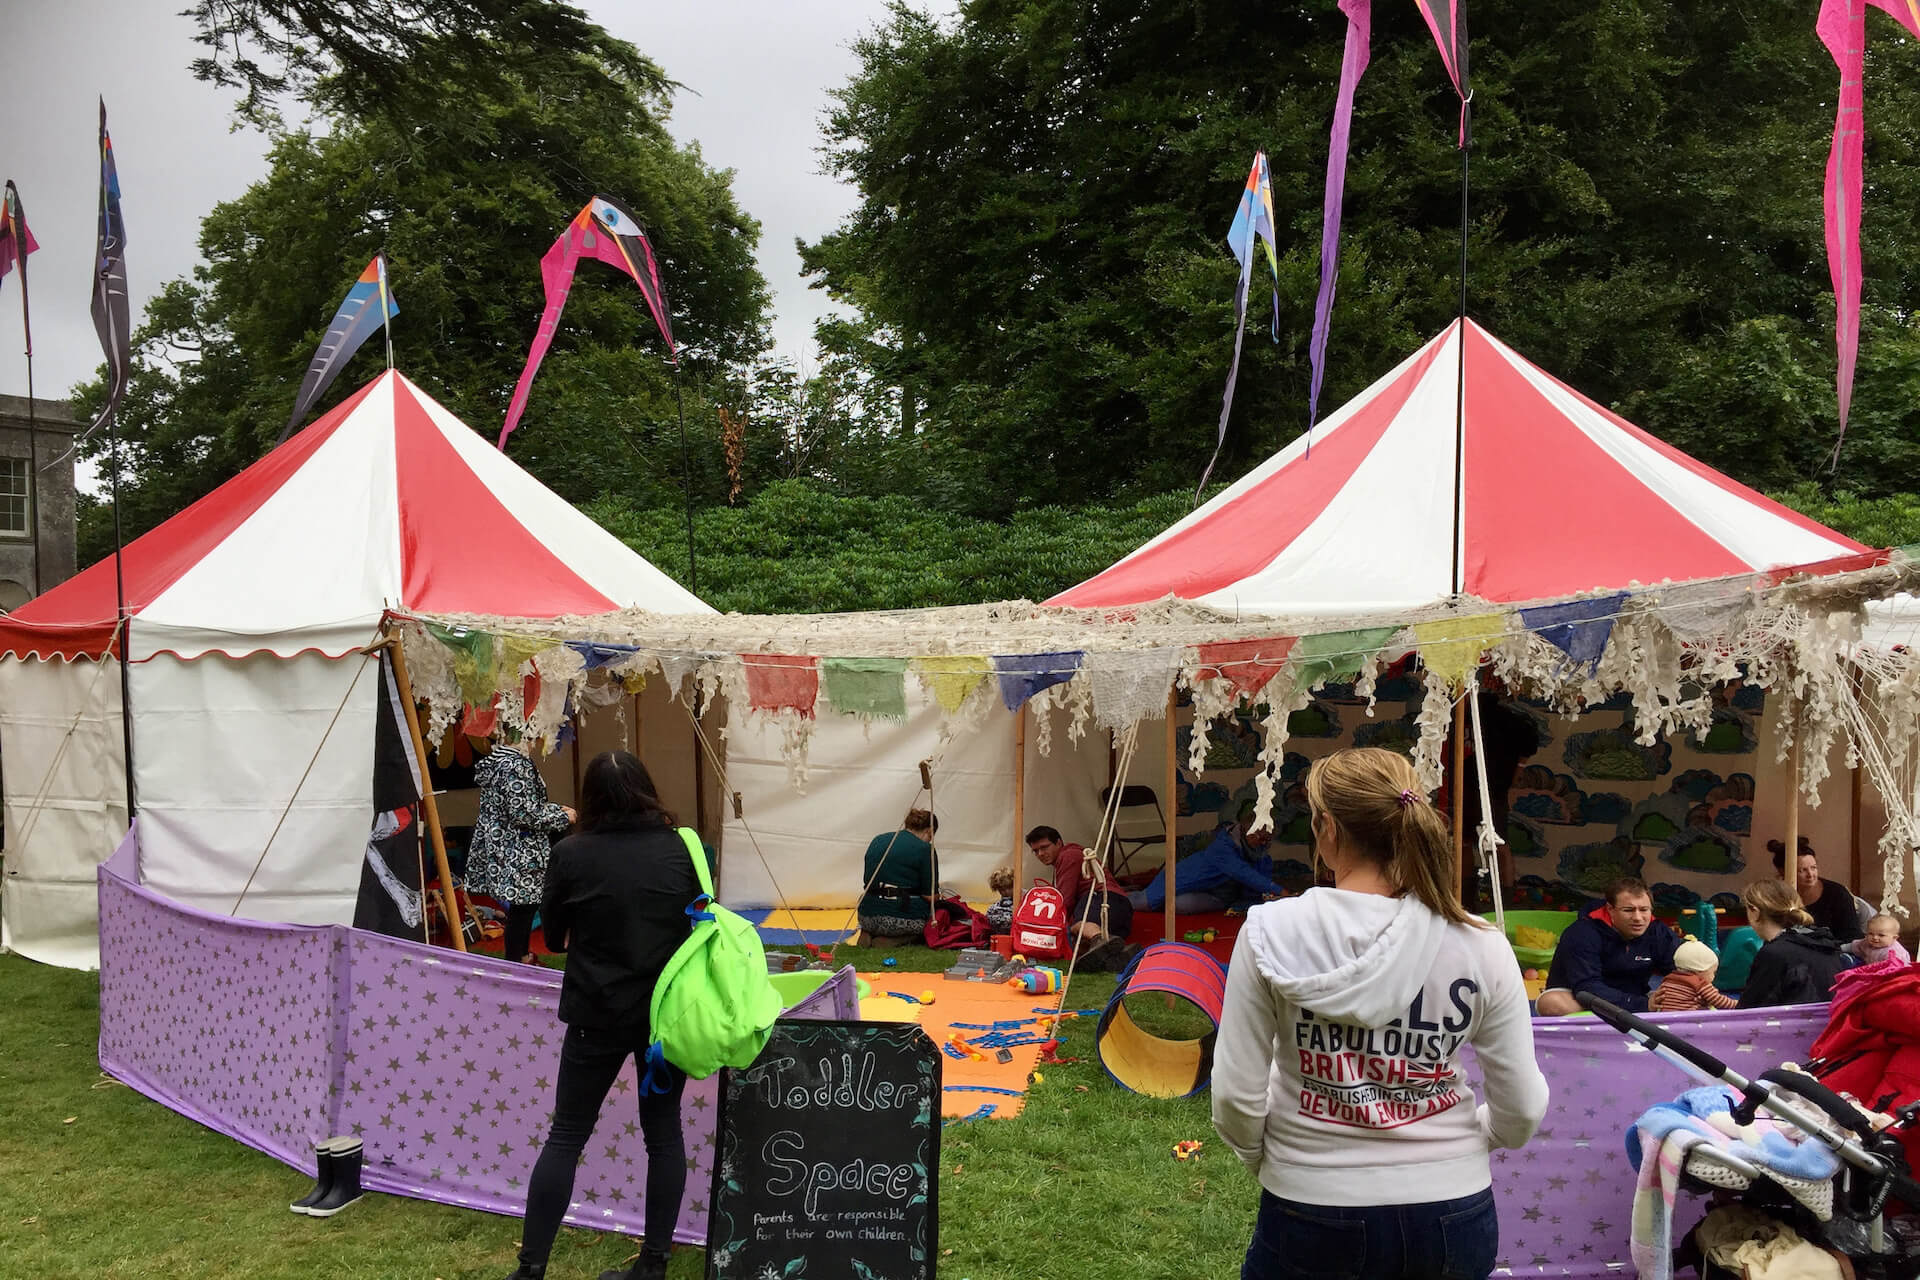 Festival under 5s play area at Camp Bestival